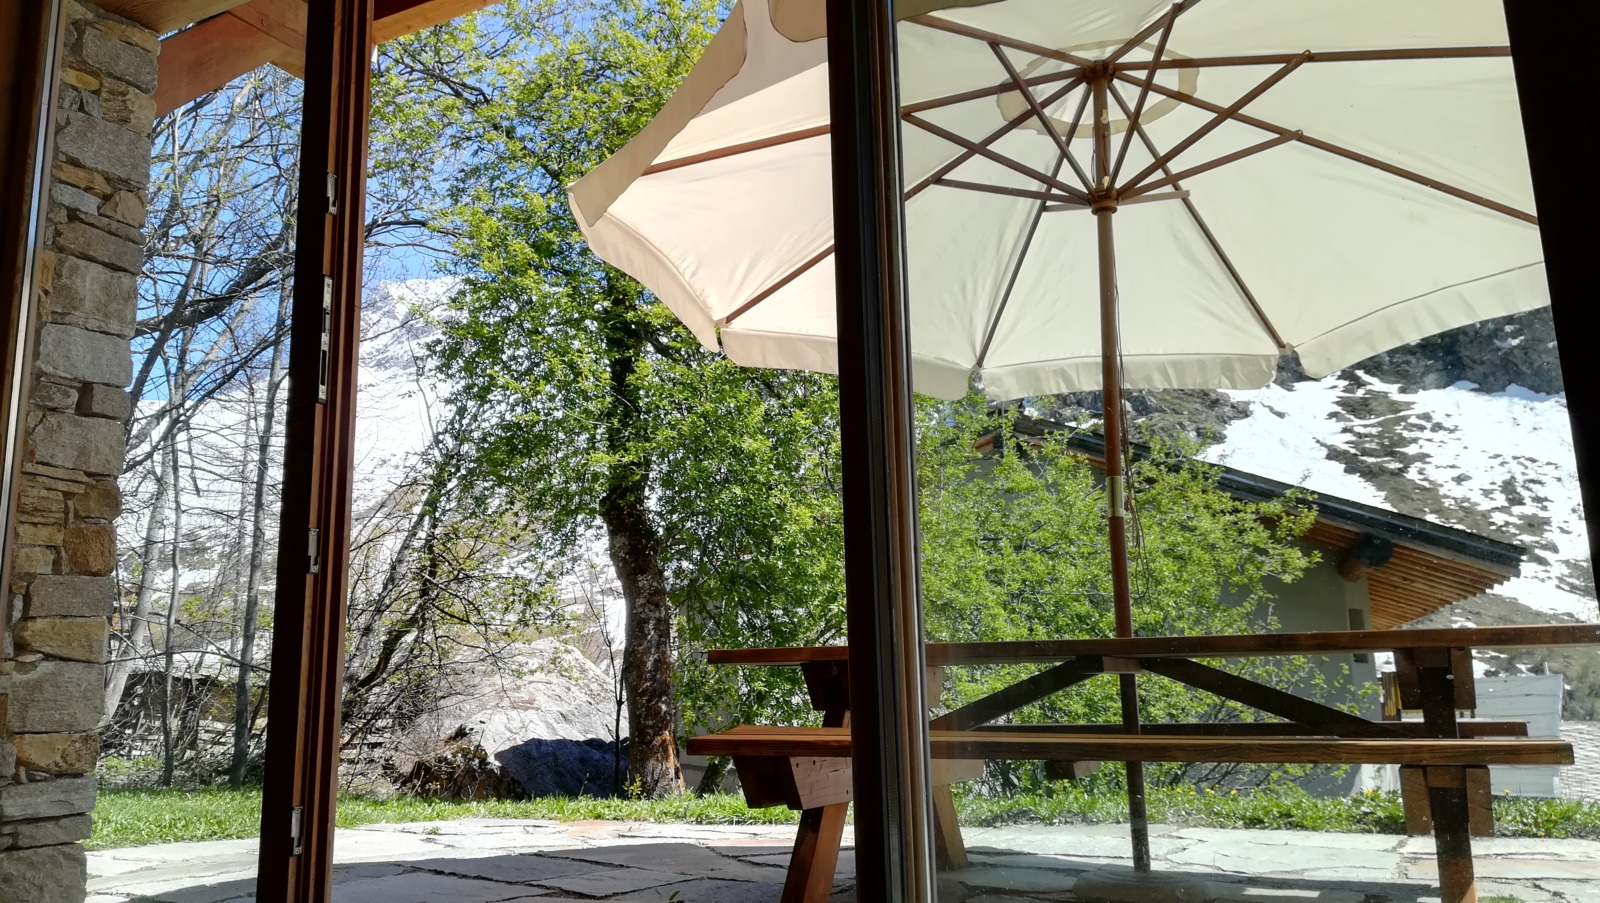 A parasol, a tree, mountains and a table seen through a bay window